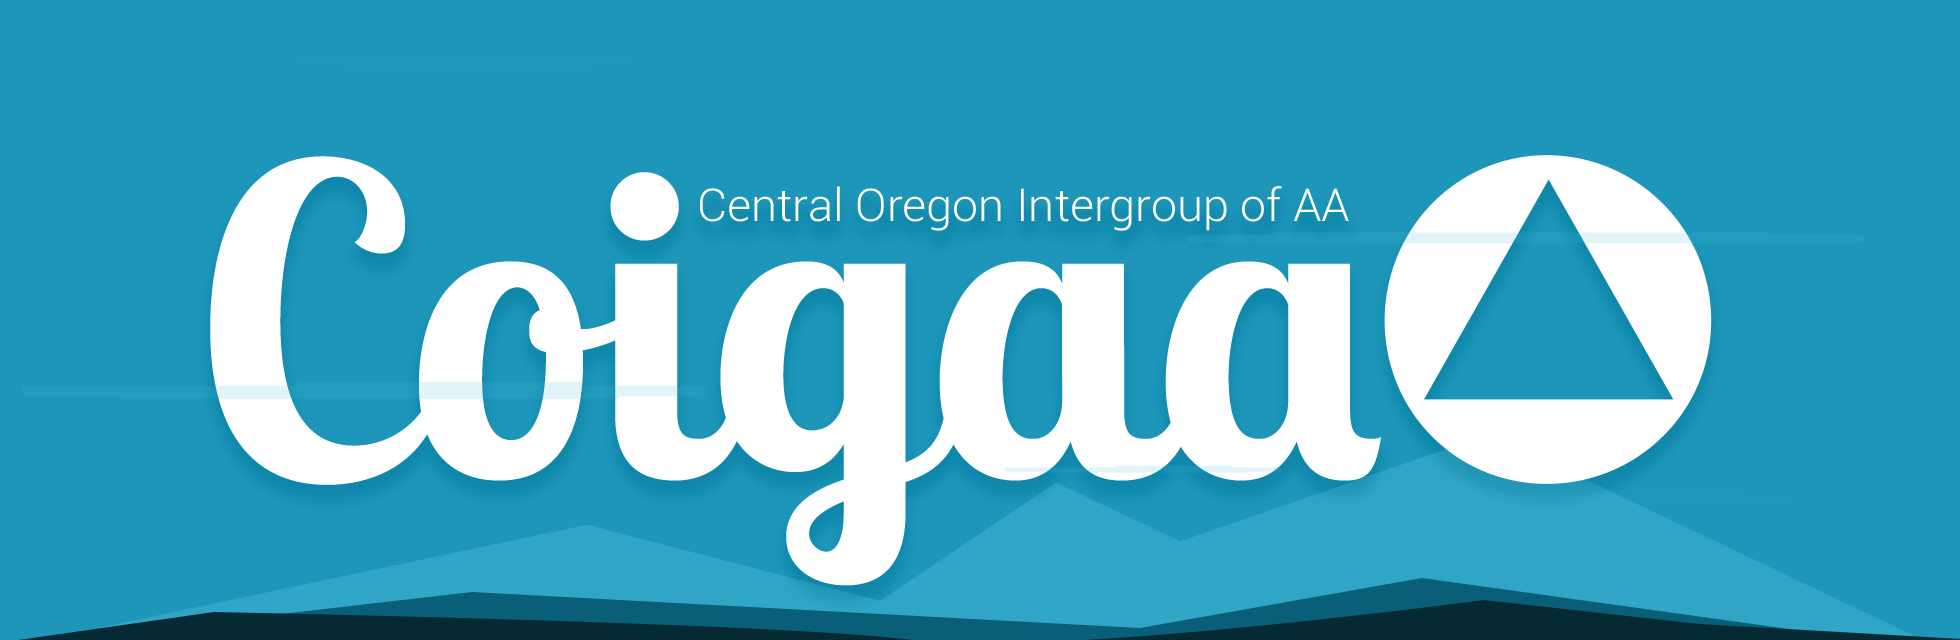 Central Oregon Intergroup of AA